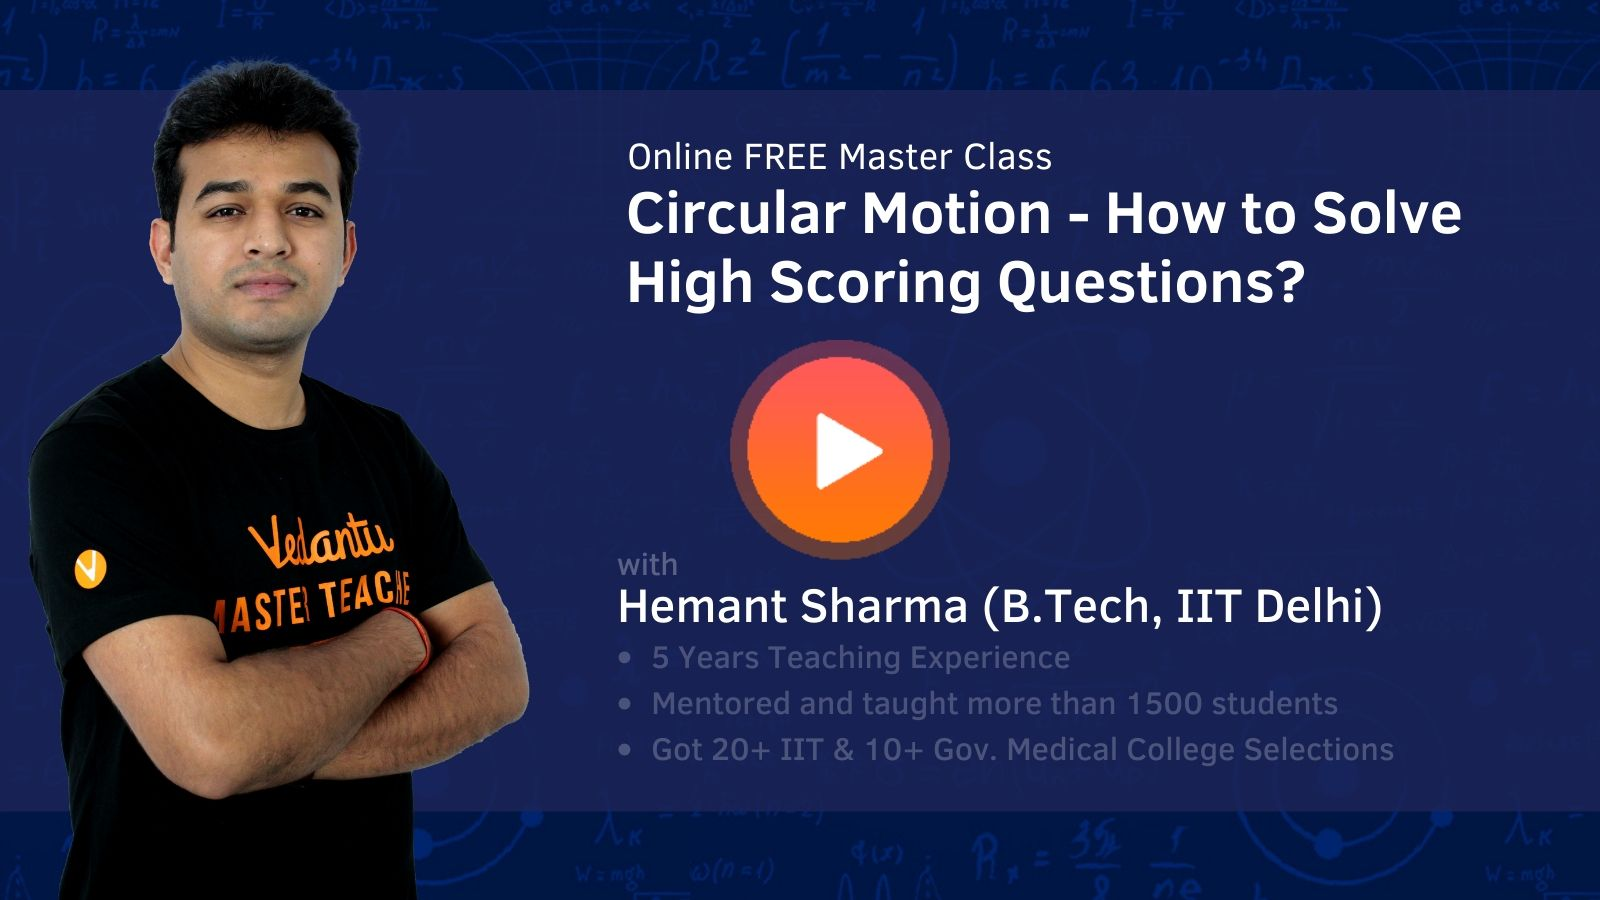 Circular Motion - How to Solve High Scoring Questions?